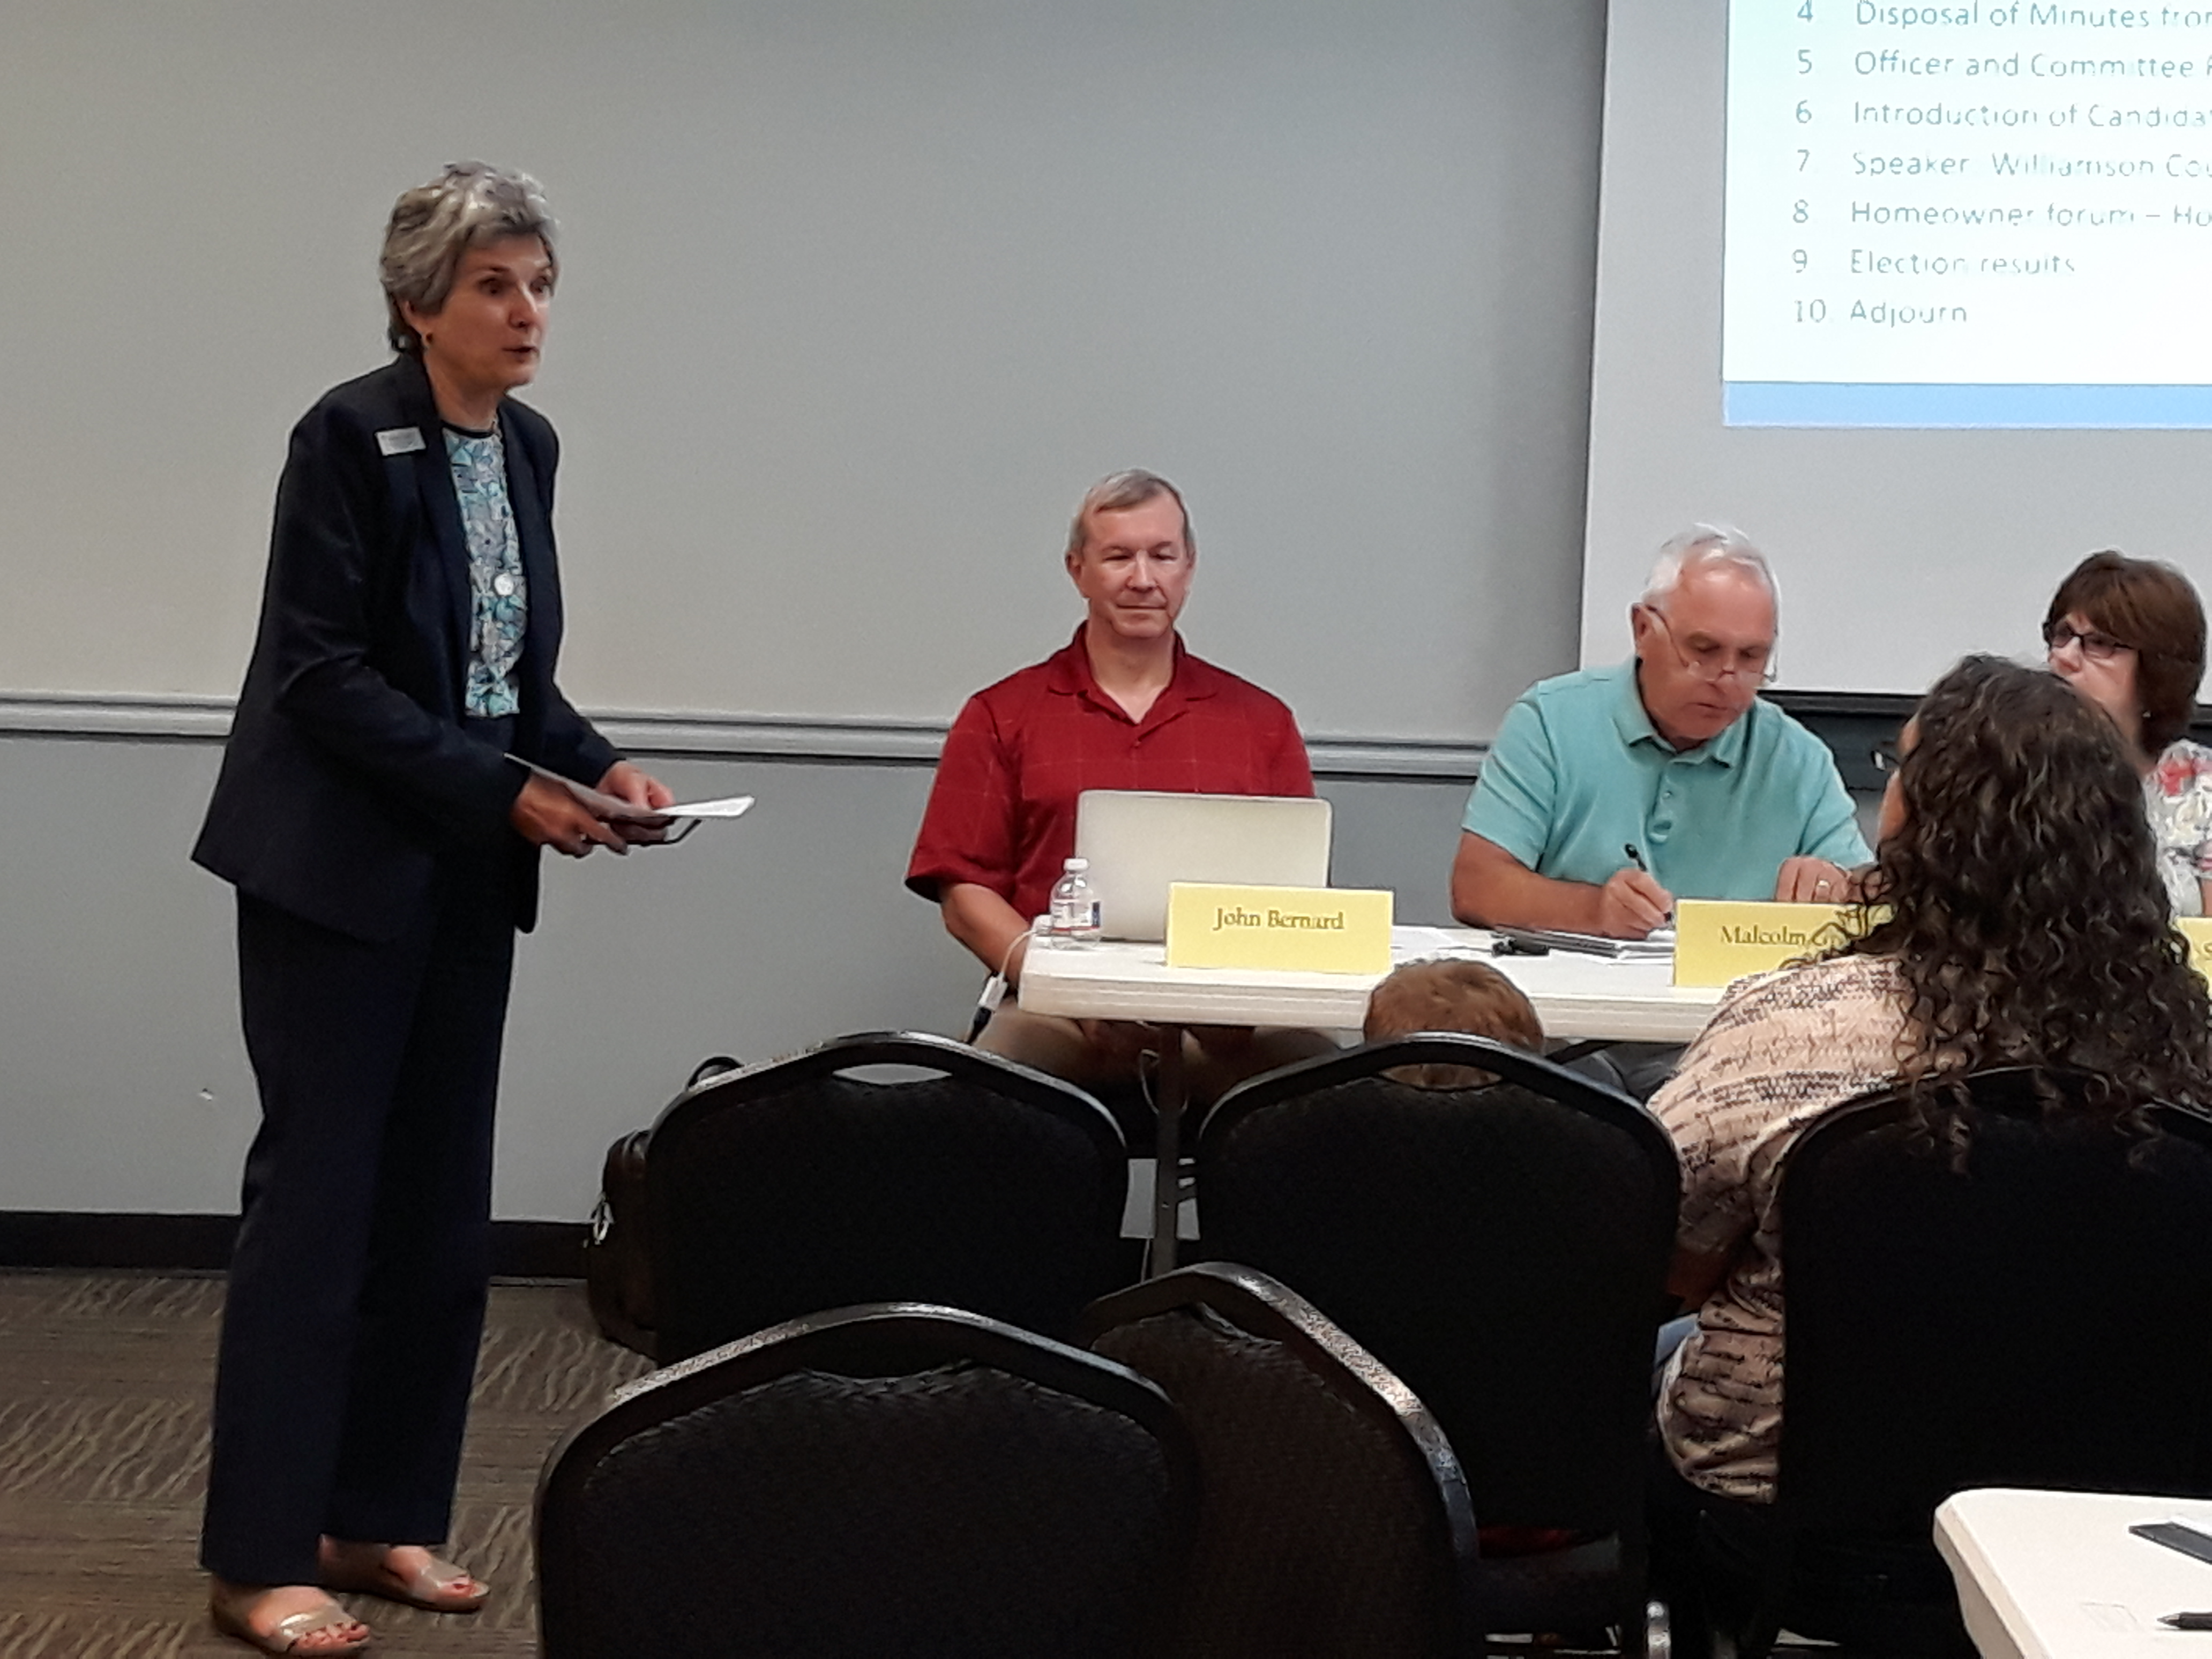 Commissioner Cook speaks to the HOA Board and residents about local issues regarding forthcoming traffic signals, chip seal, Apple and Robinson Ranch's status, and answered questions on street safety and other concerns.